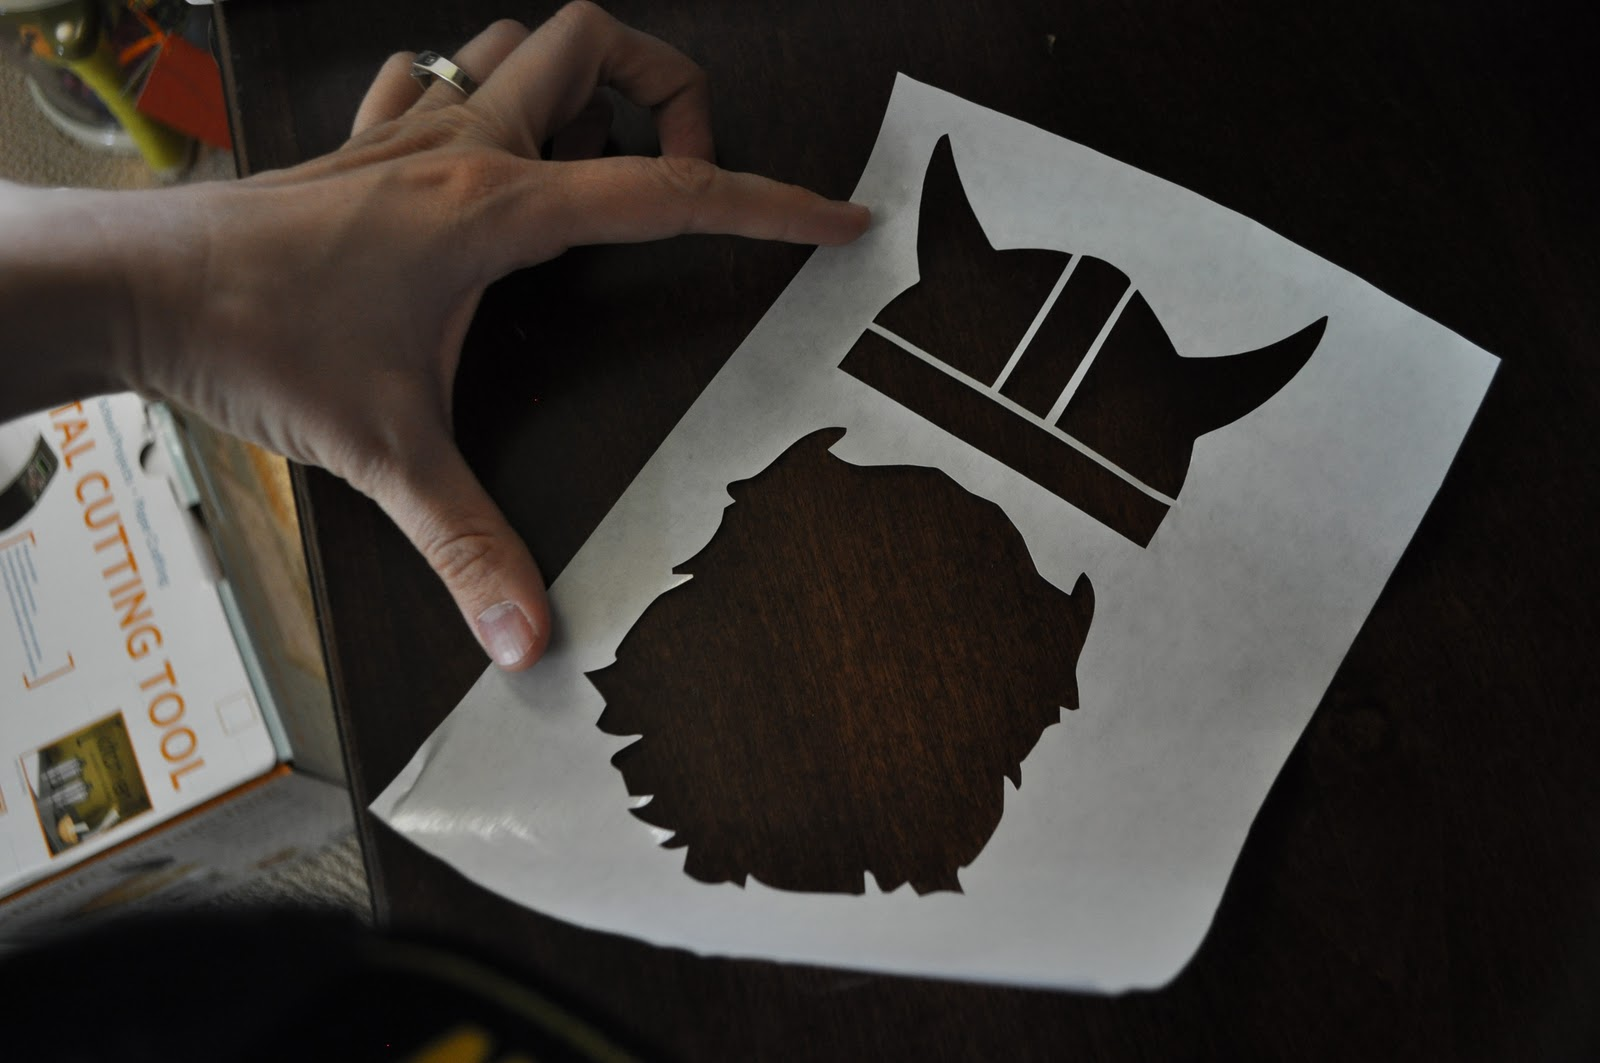 how to cut frrezer paper without a cutter